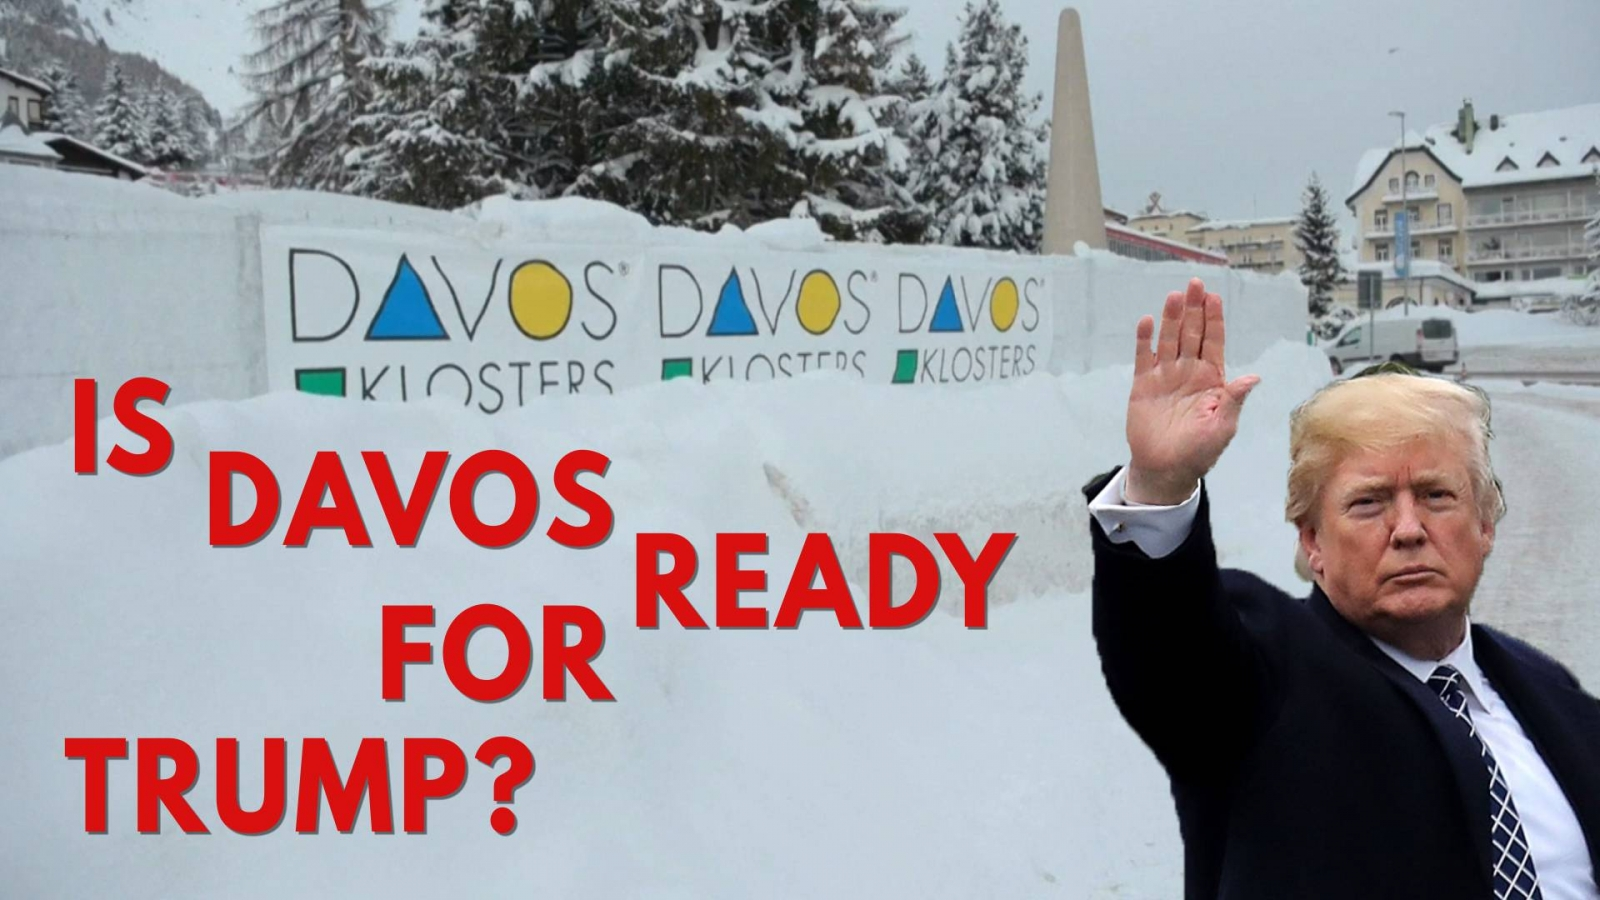 trump-is-expected-at-the-world-economic-forum-in-davos-which-promotes-an-agenda-completely-opposite-of-his-policies